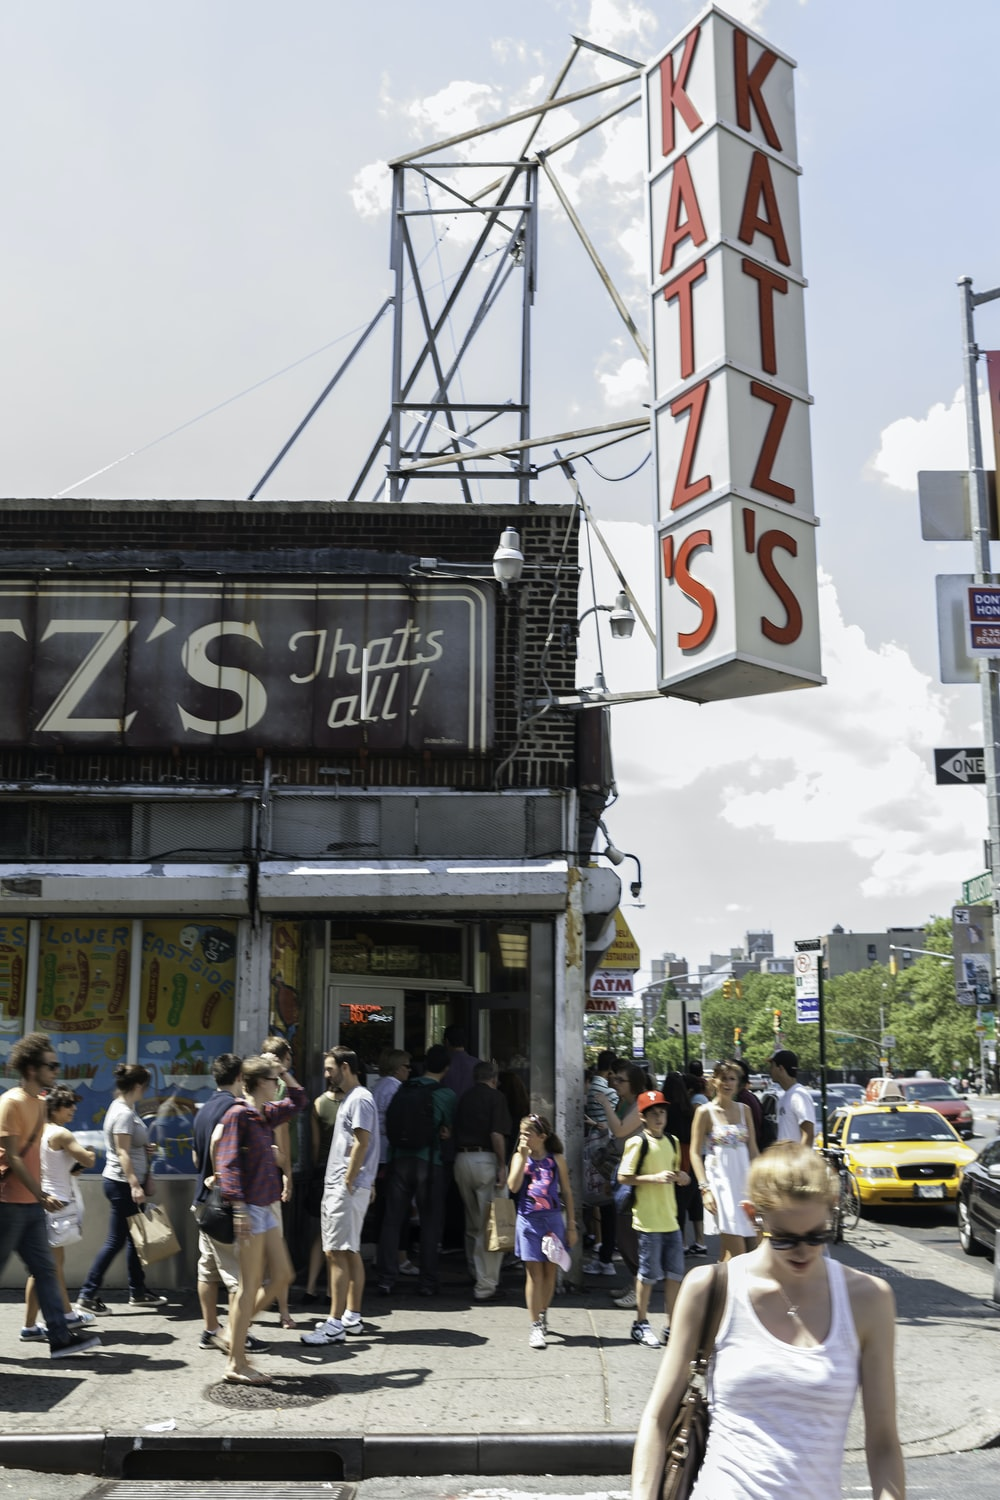 crowd in front of Katz's building during daytime